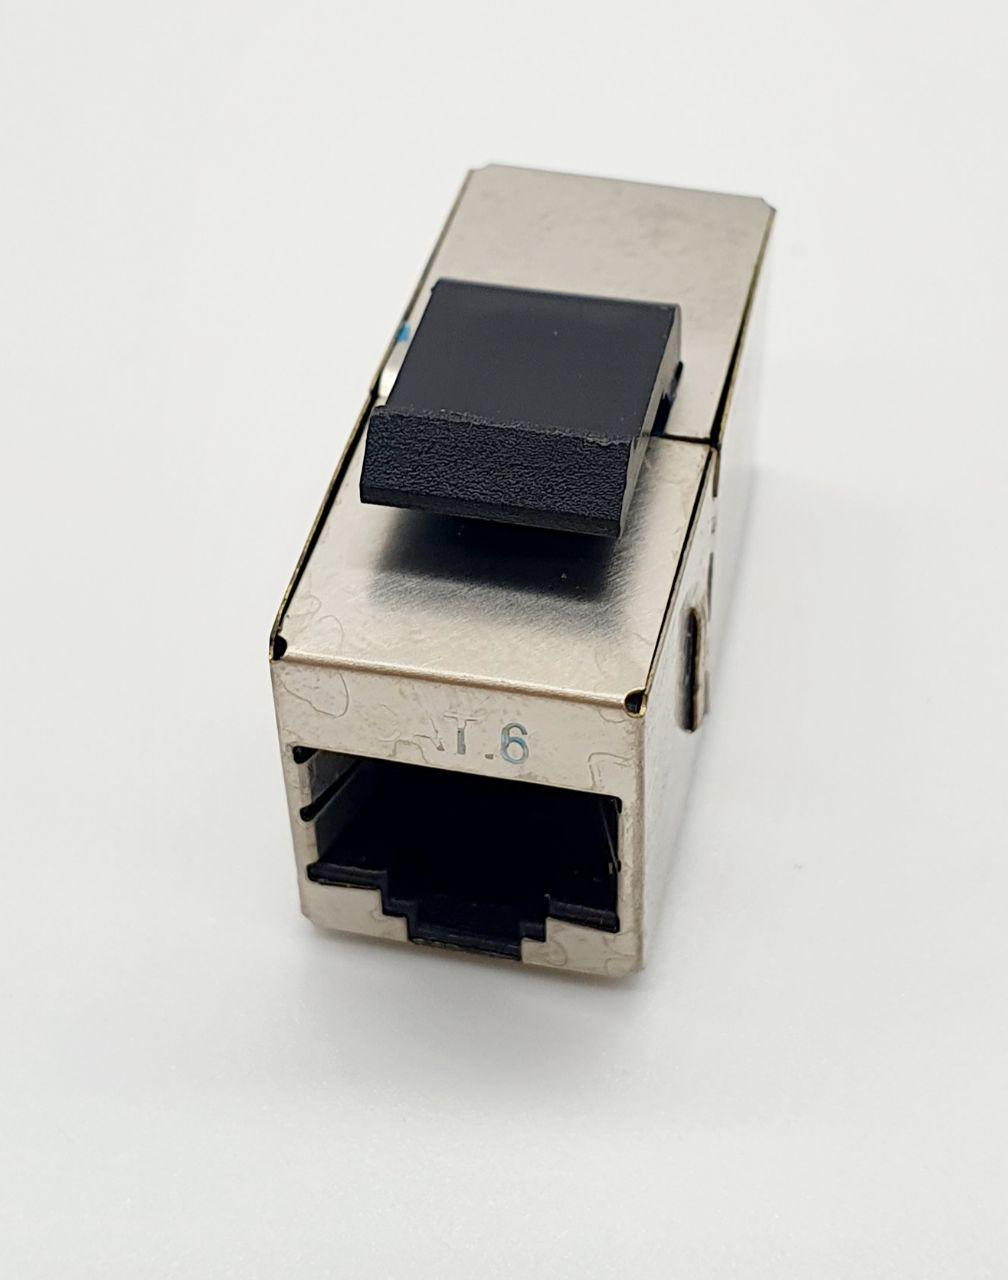 Rj45 Connector Coupler Female To Female Metal Housing